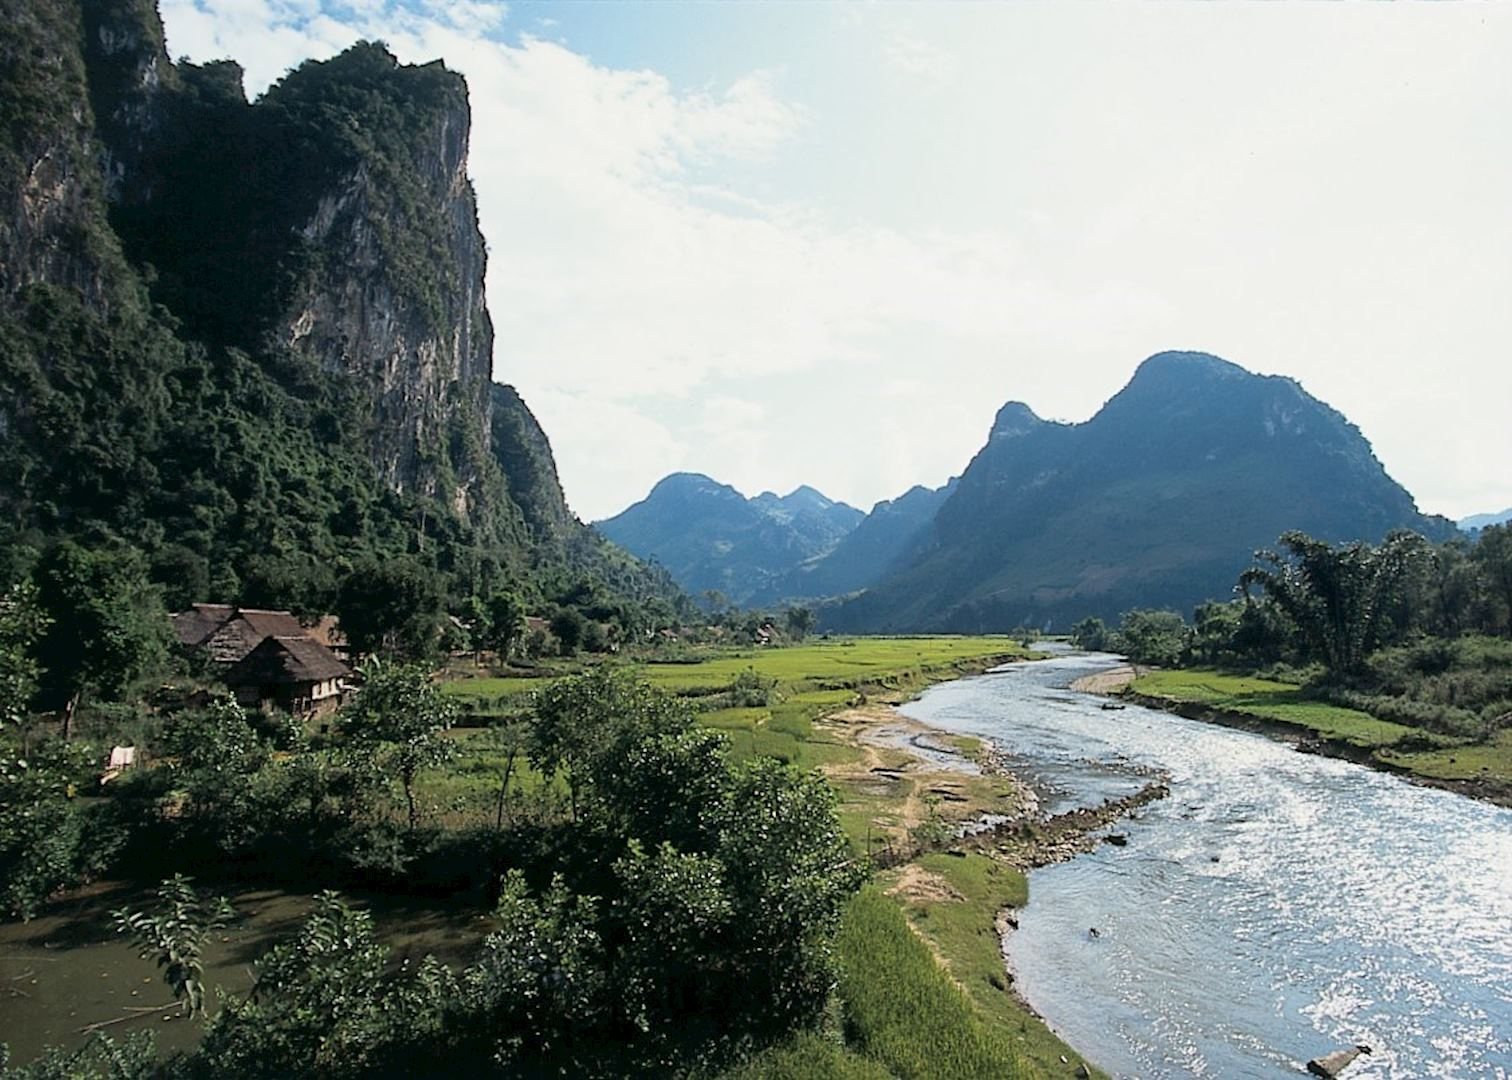 Visit Mai Chau on a trip to Vietnam | Audley Travel